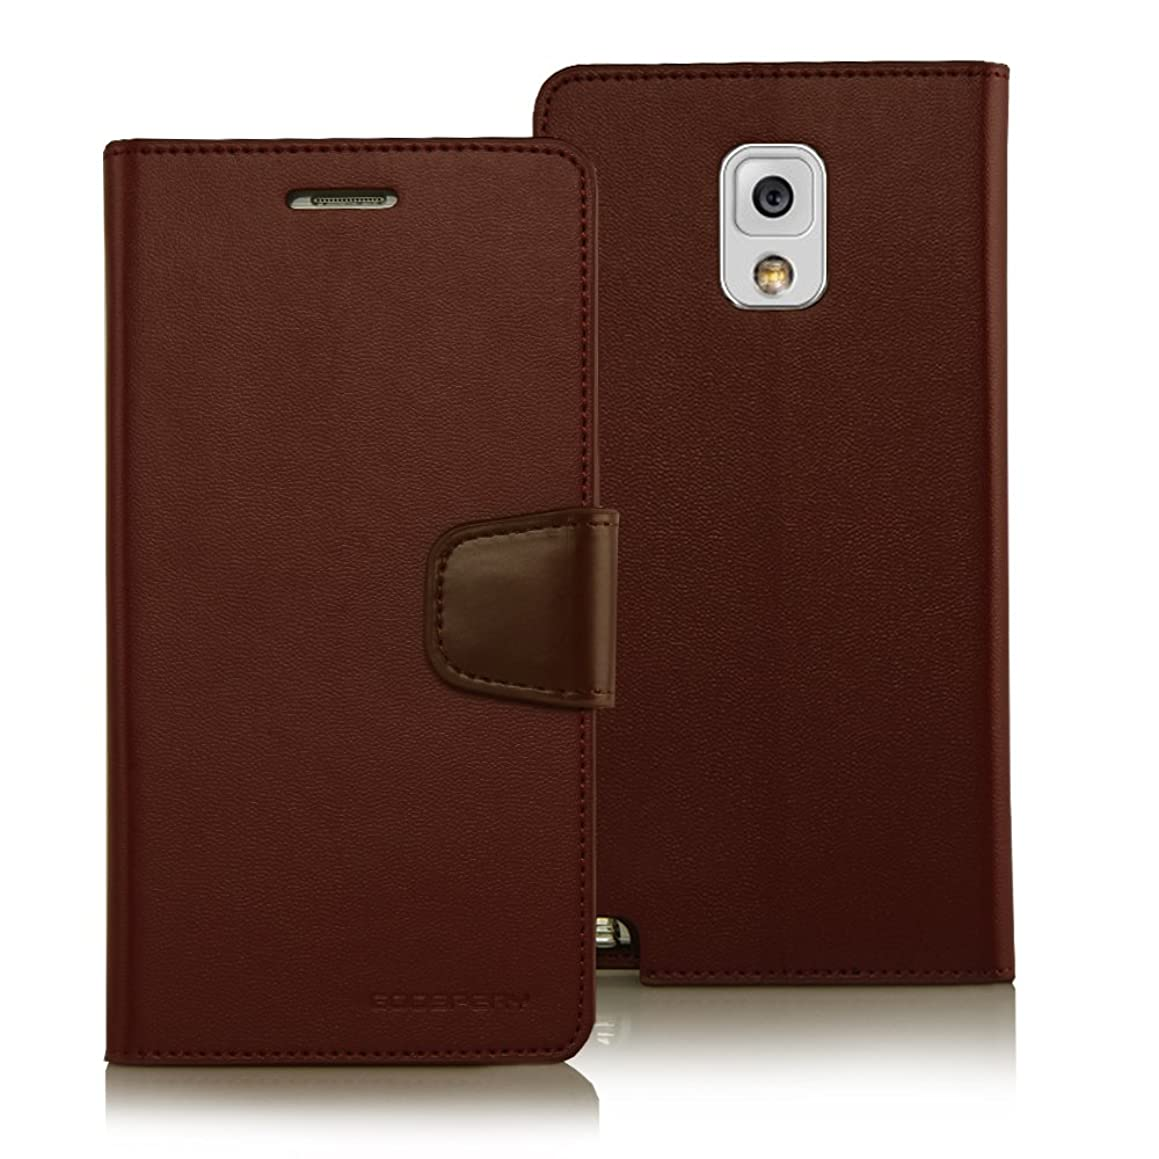 Galaxy NOTE 3 Case, [Drop Protection] Goospery Sonata Diary Premium Synthetic Leather Wallet Type [ID / Credit Card Slots + Cash Pocket] Cover - Brown